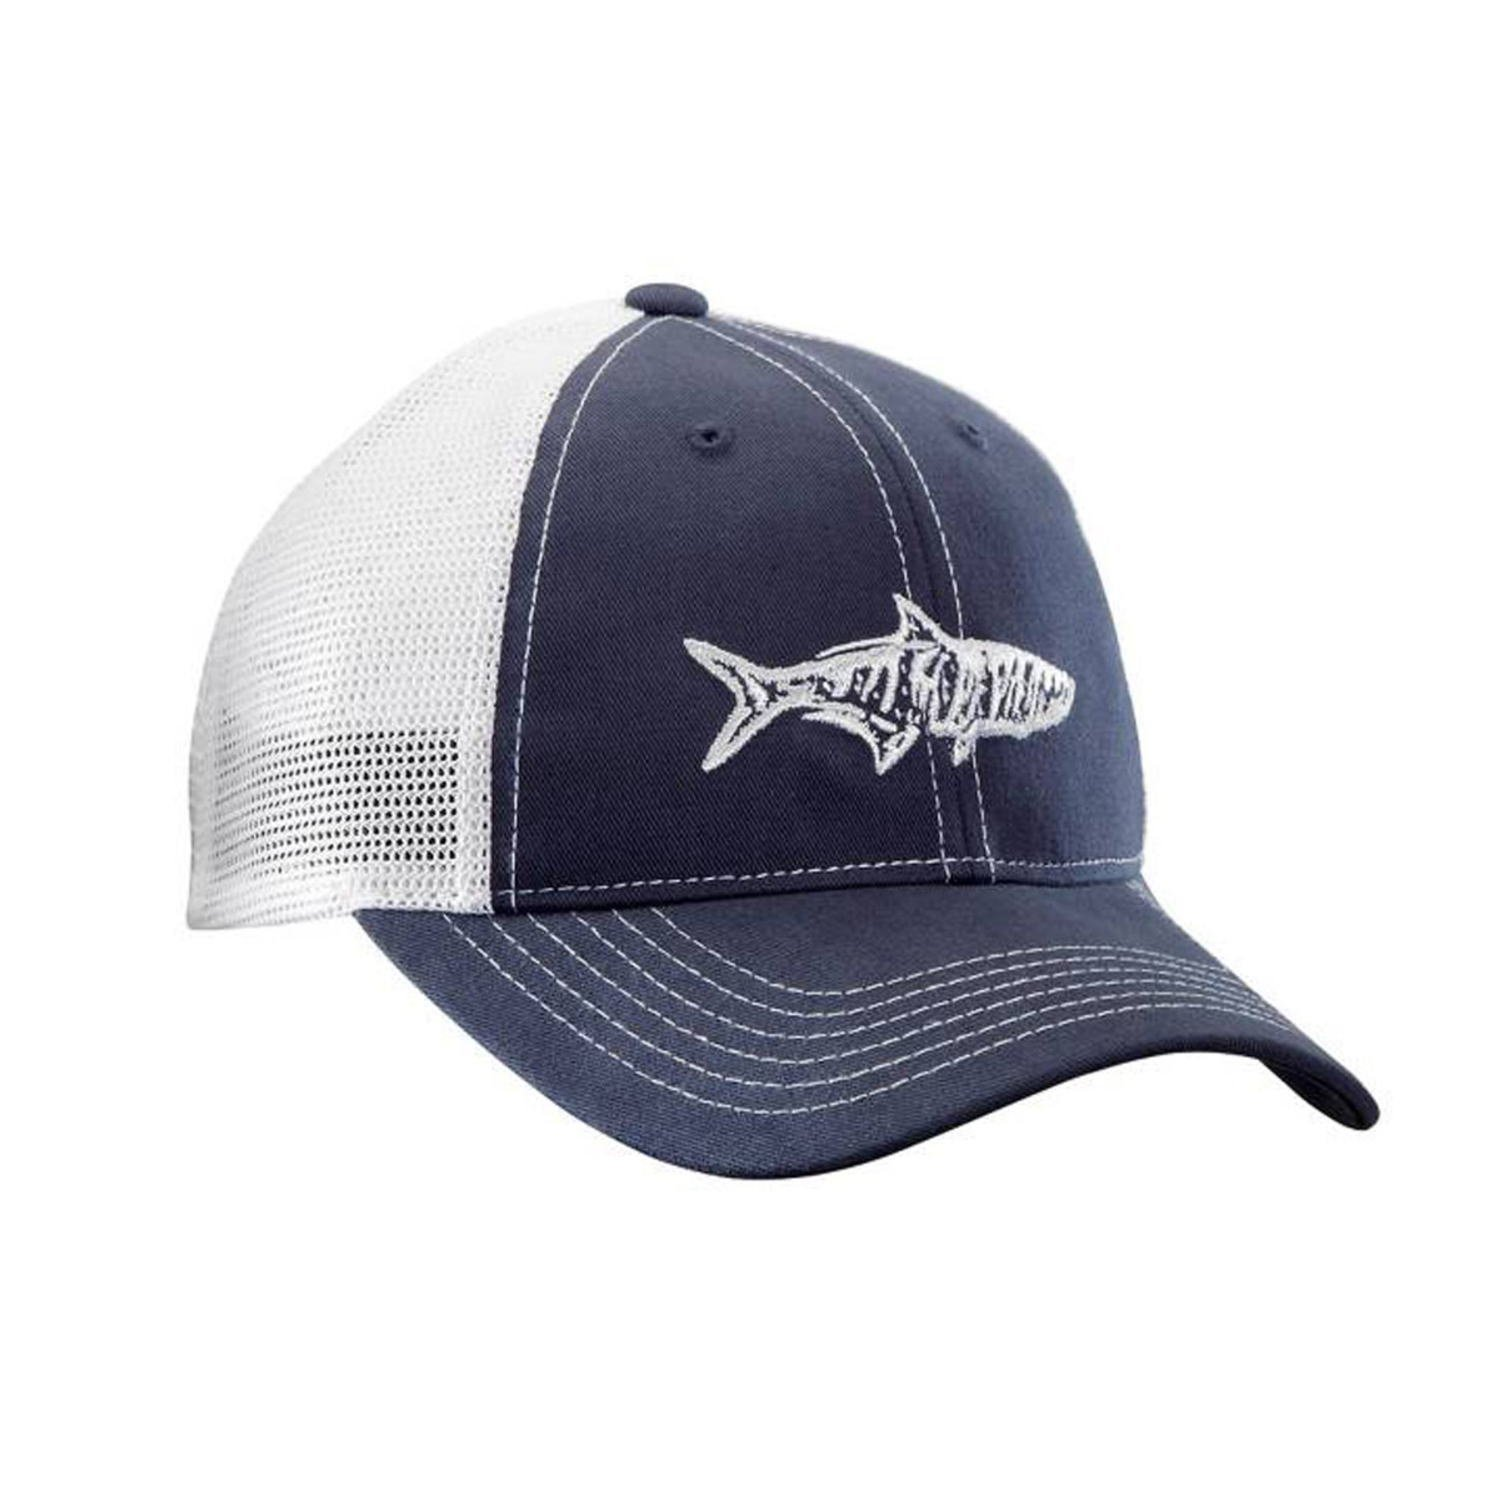 Flying Fisherman Tarpon Trucker Hat, Navy/White H1735